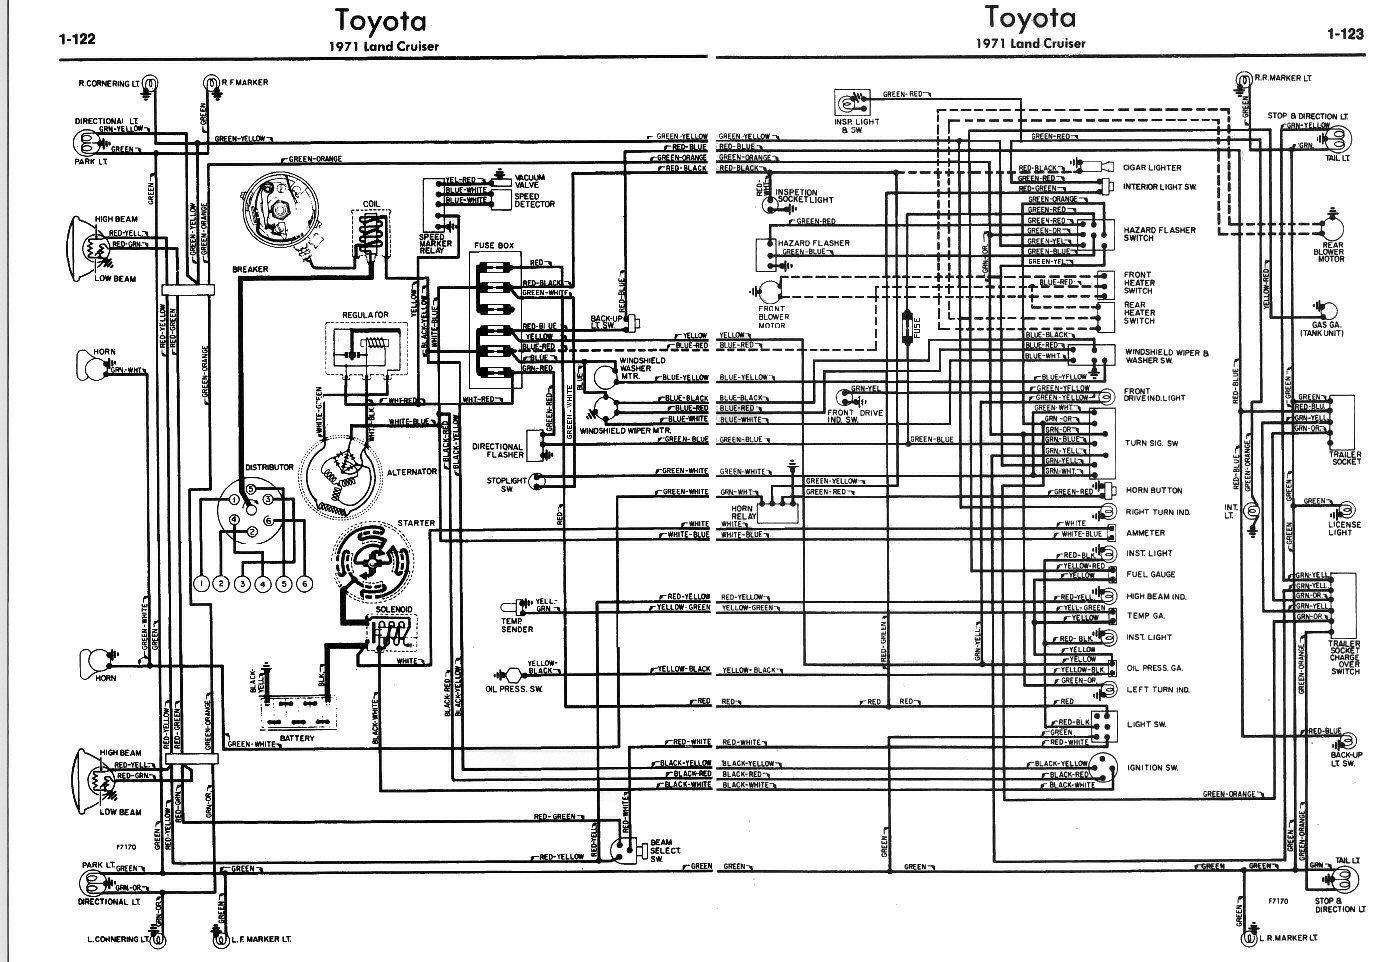 cruiser wiring rh globalsoftware inc com 1971 fj40 wiring diagram fj80 wiring diagrams